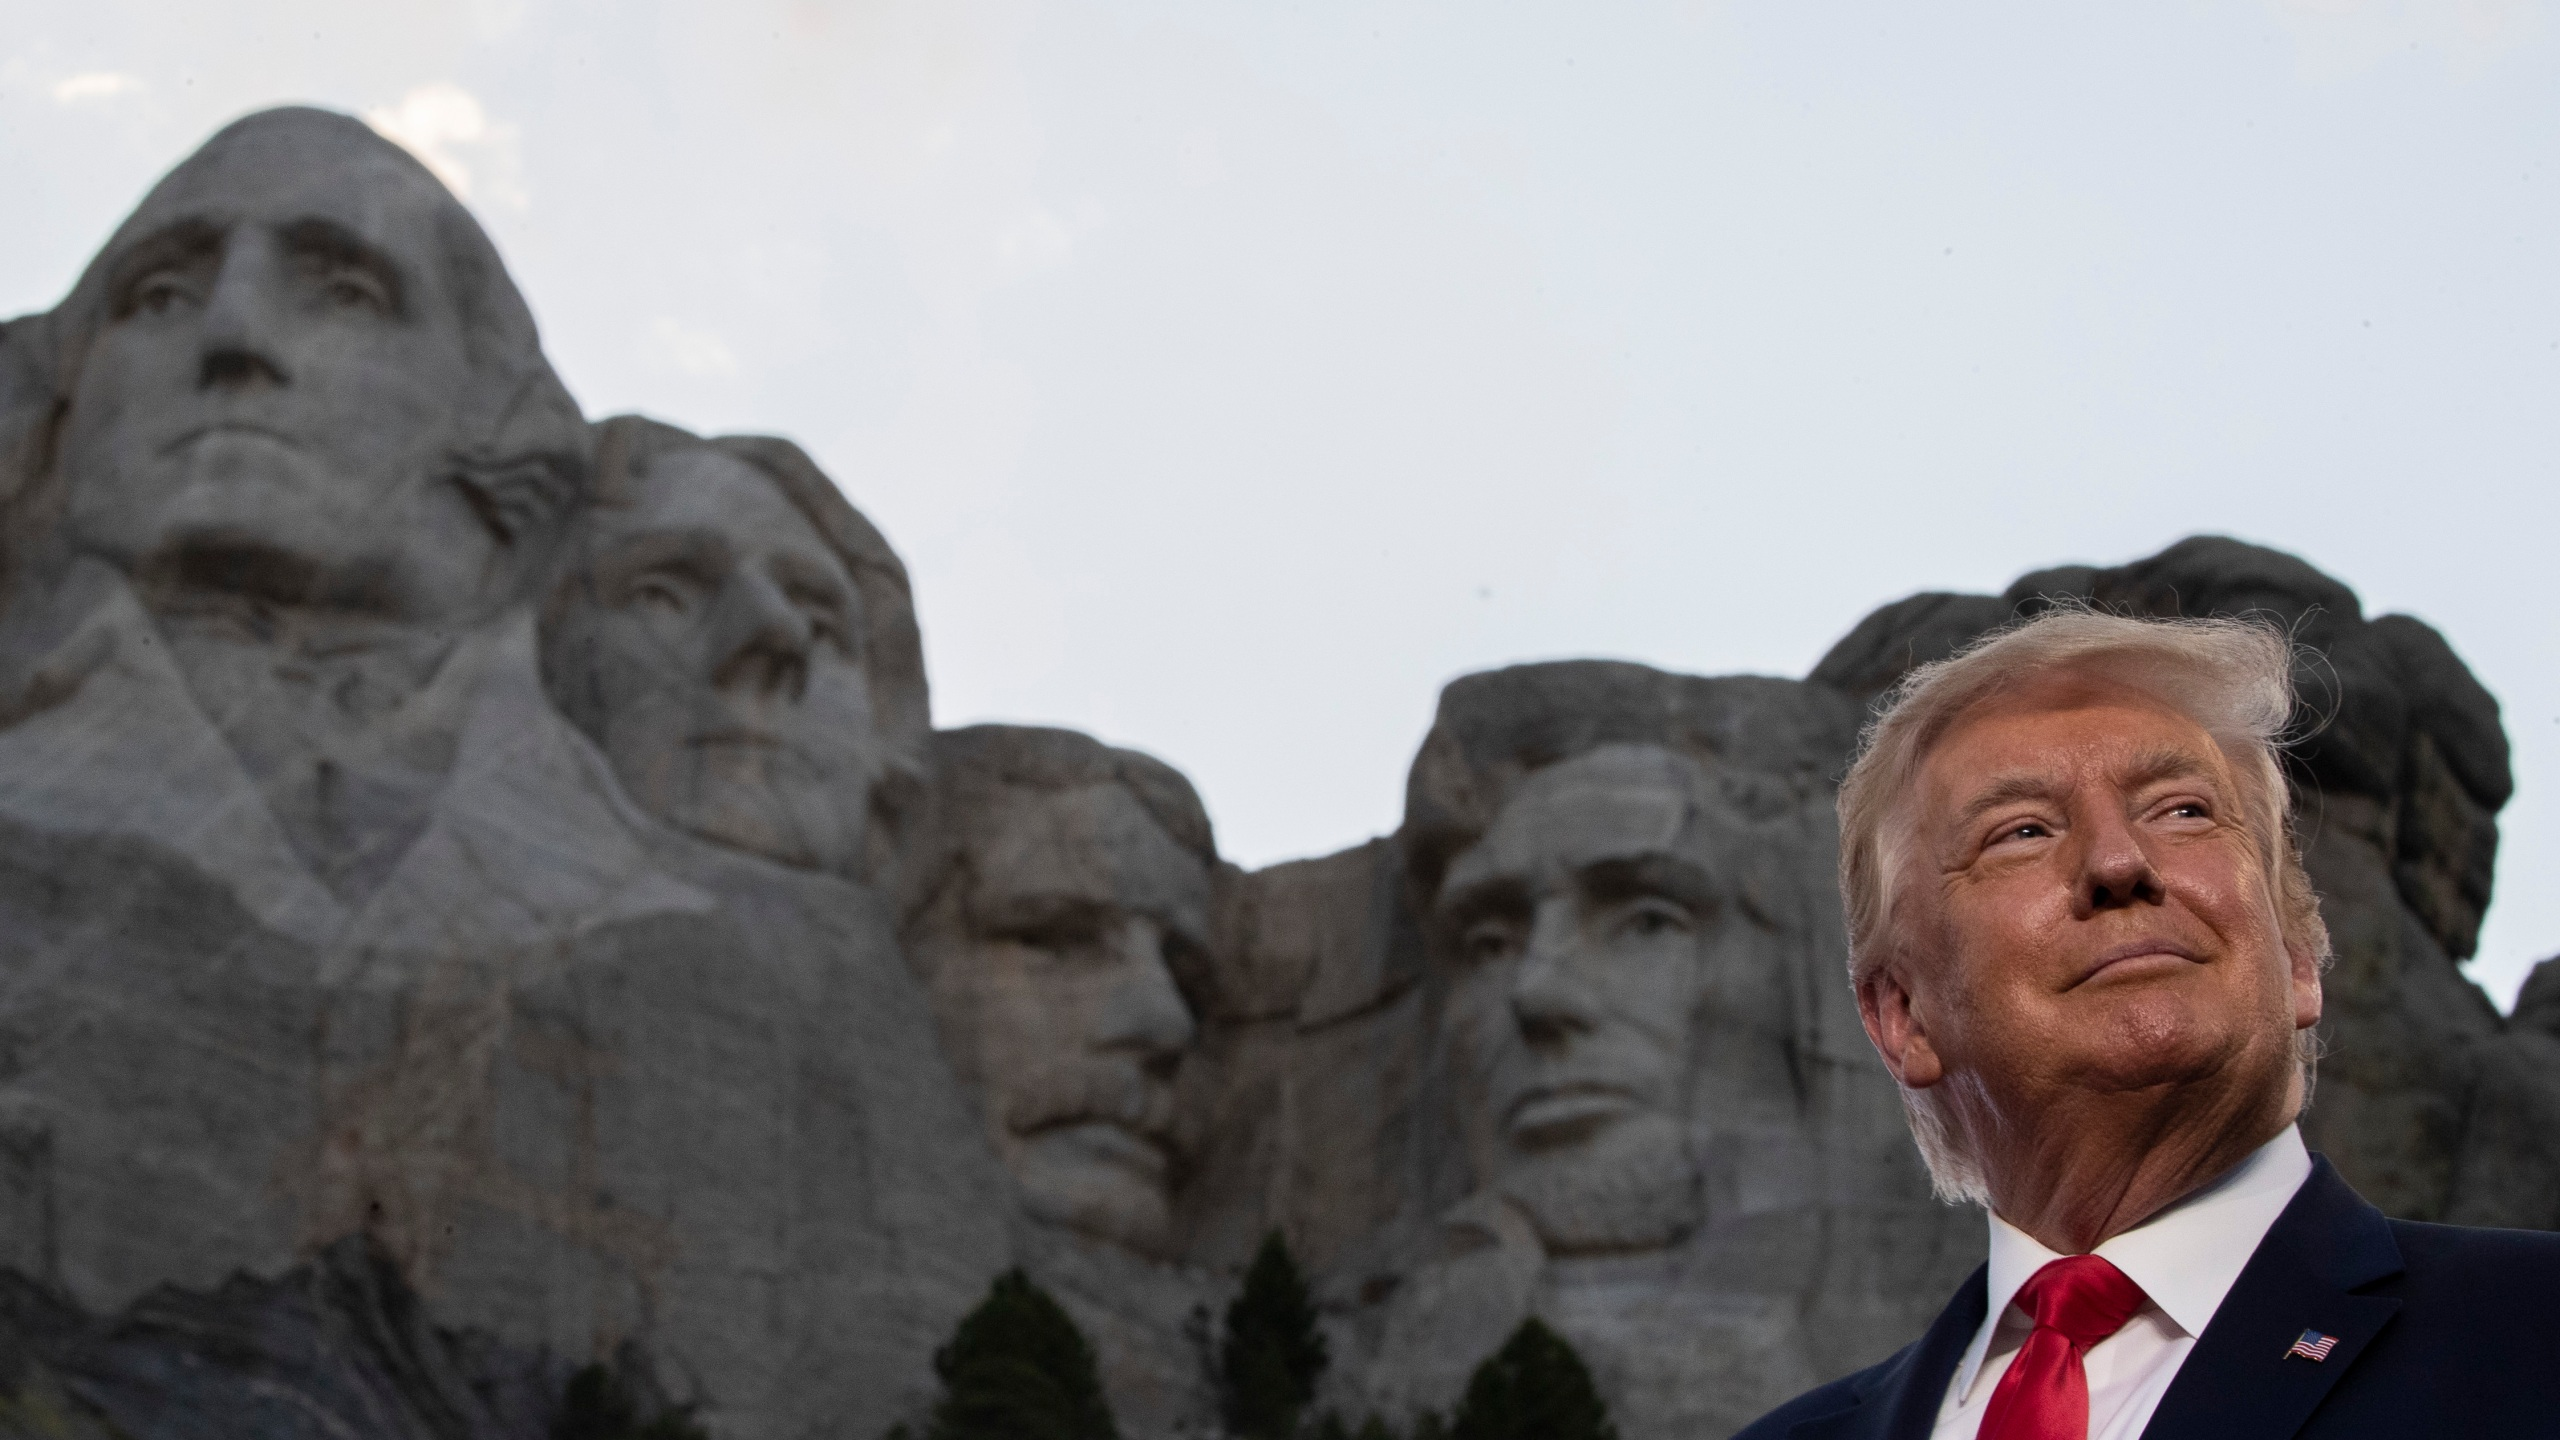 President Donald Trump smiles at Mount Rushmore National Memorial, Friday, July 3, 2020, near Keystone, S.D. (AP Photo/Alex Brandon)